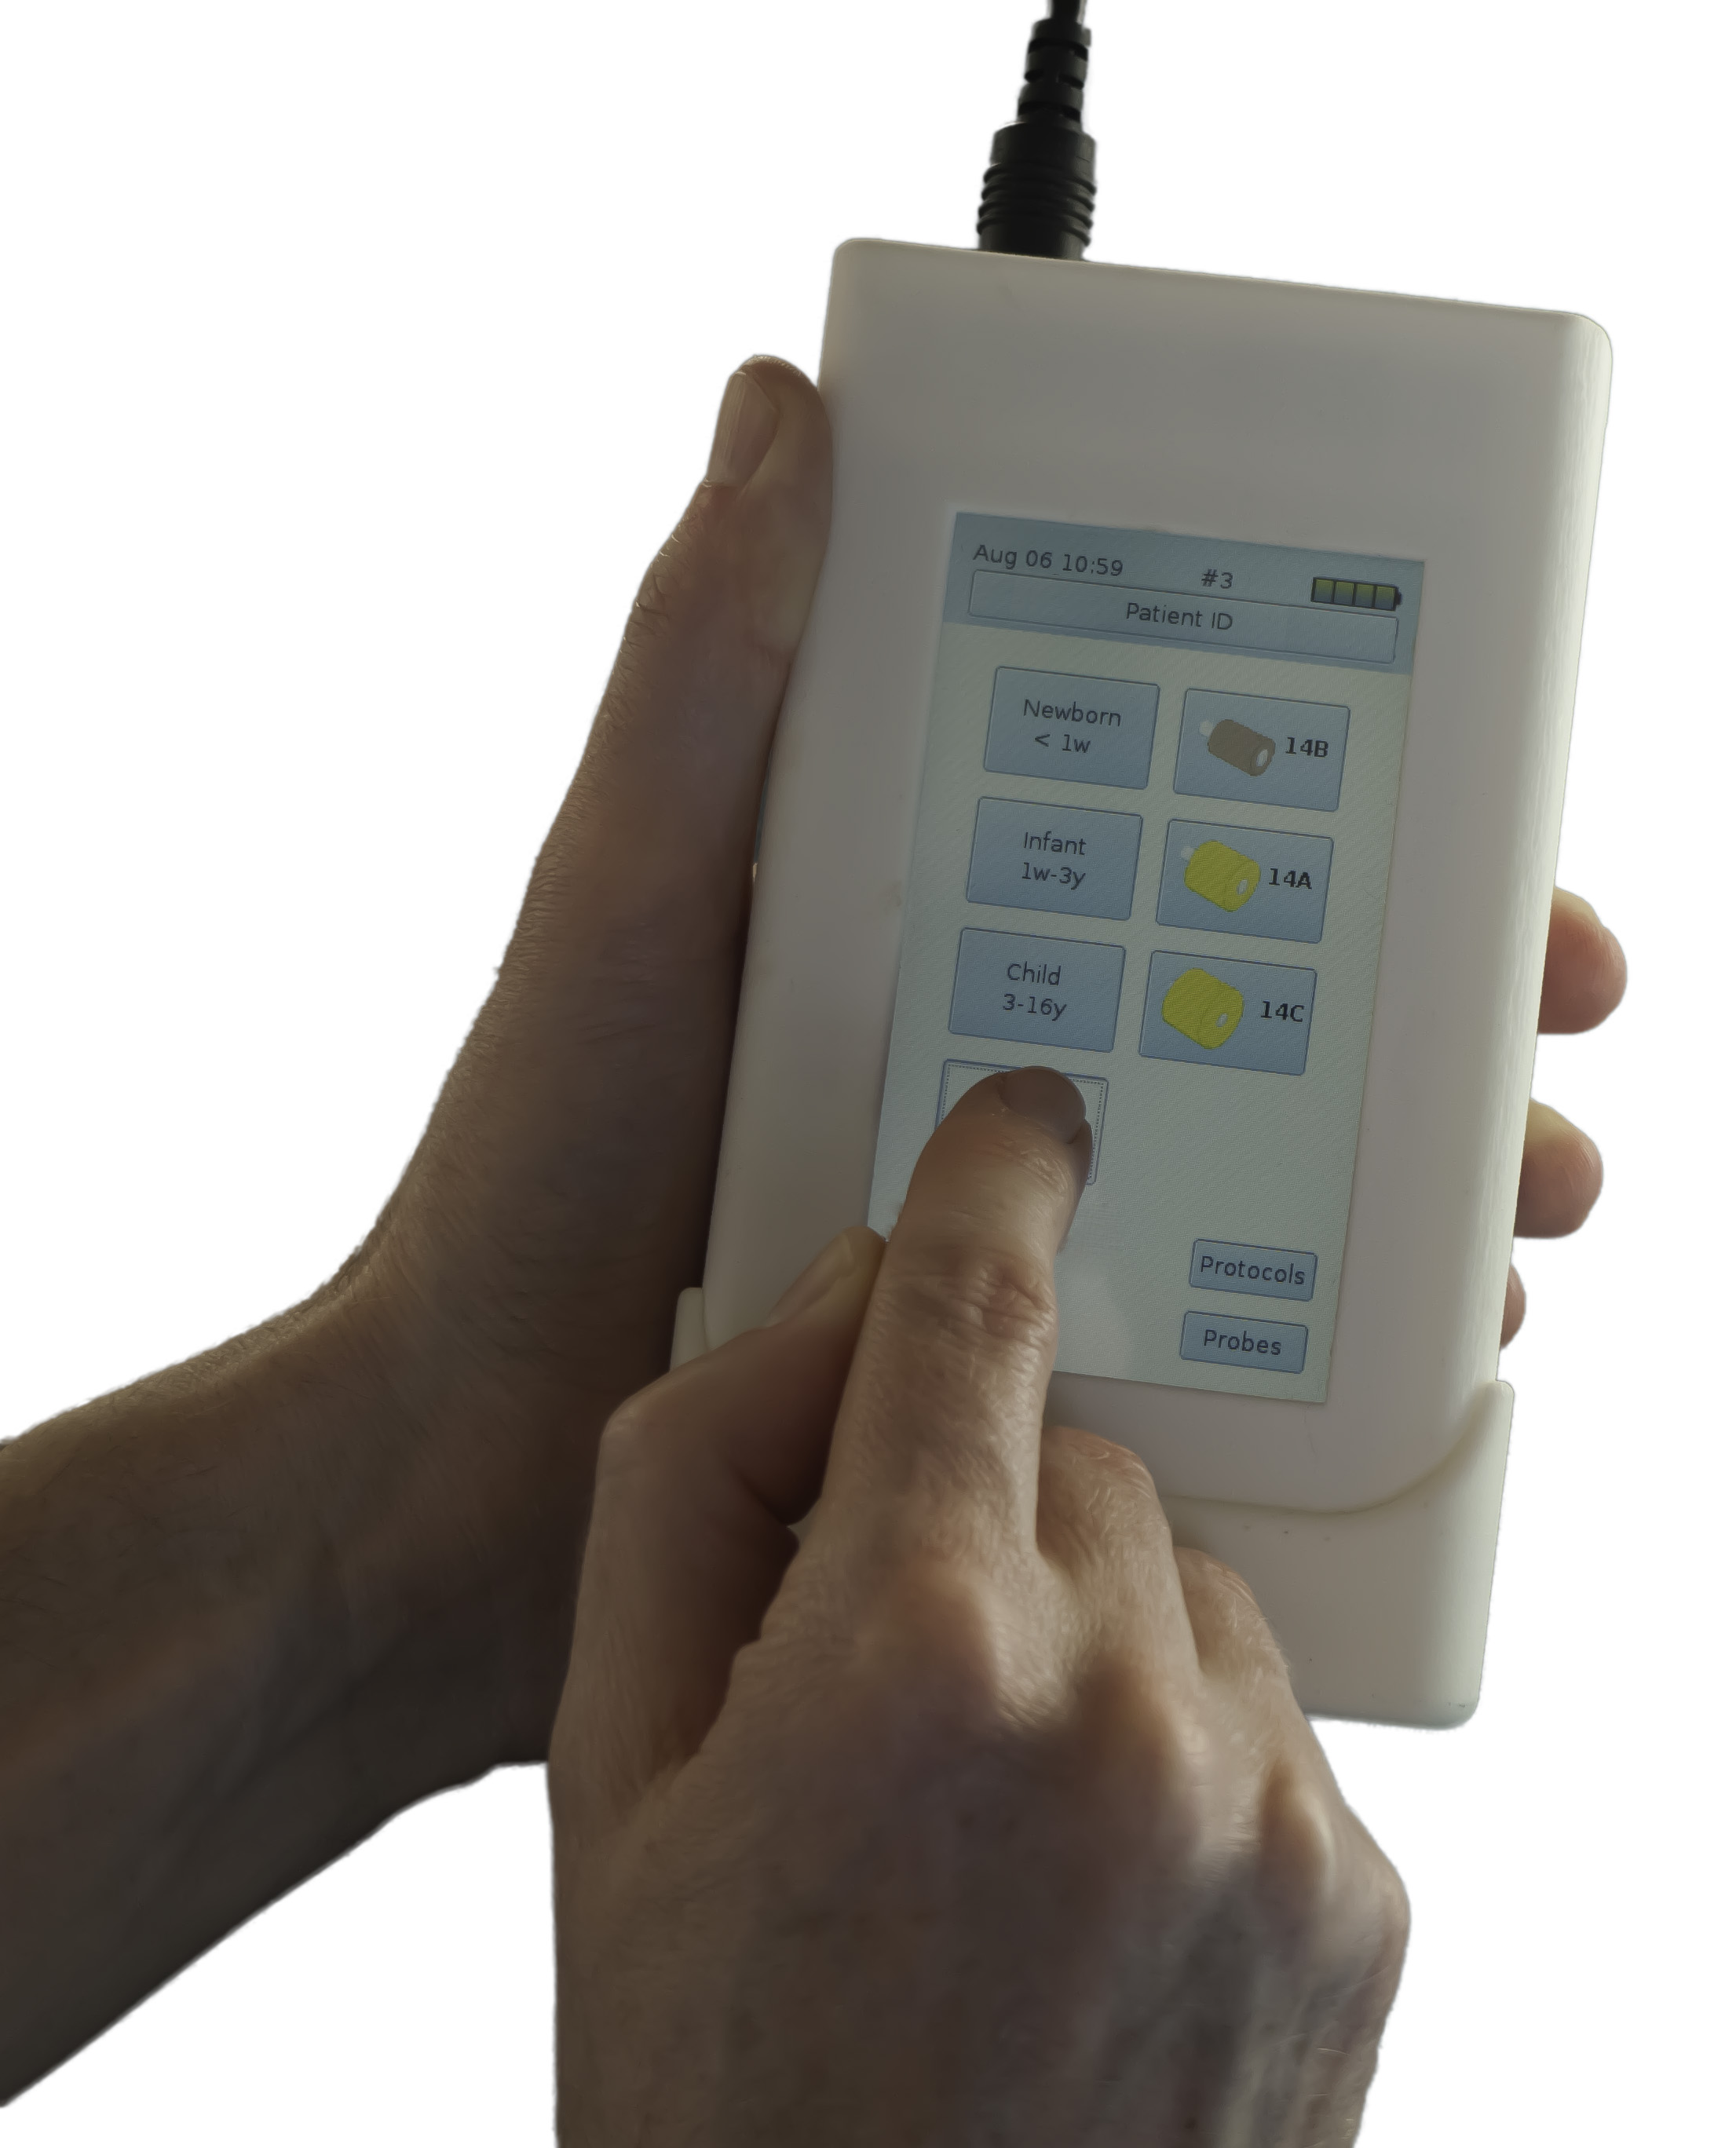 The handheld touchscreen OtoStat.